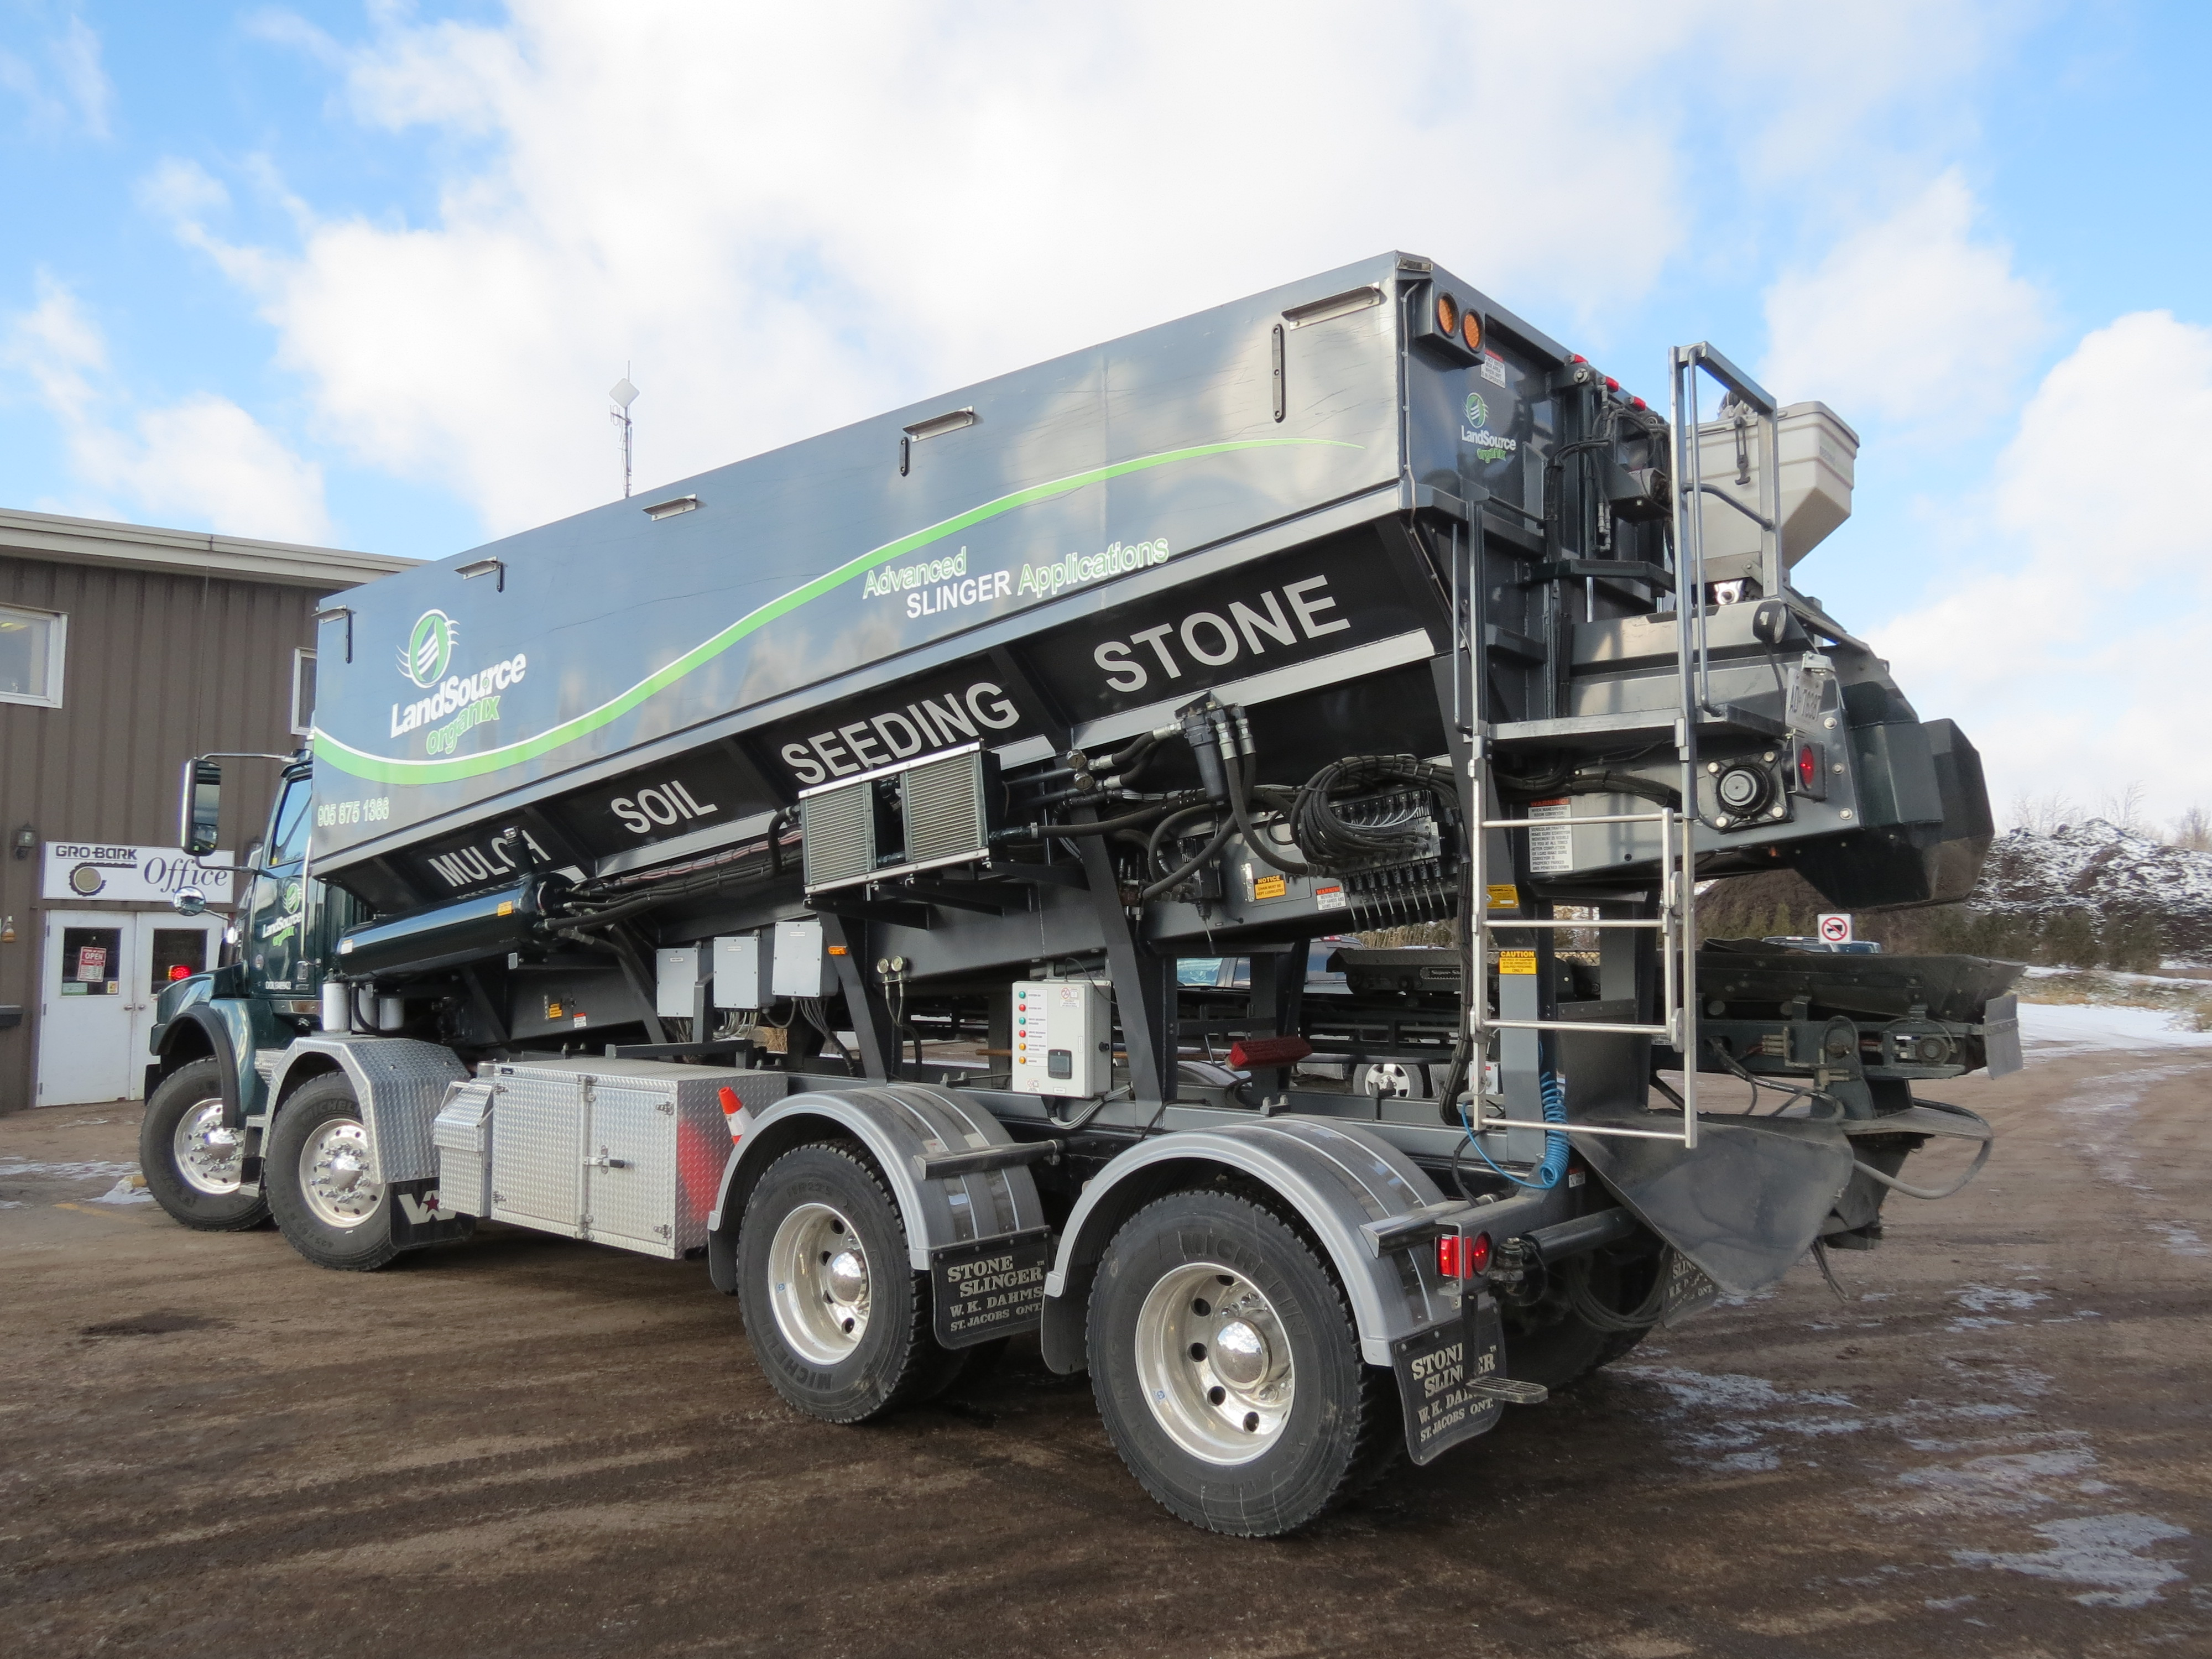 Trucks With Blowers : Advanced stone slinger system achieves lower costs plus